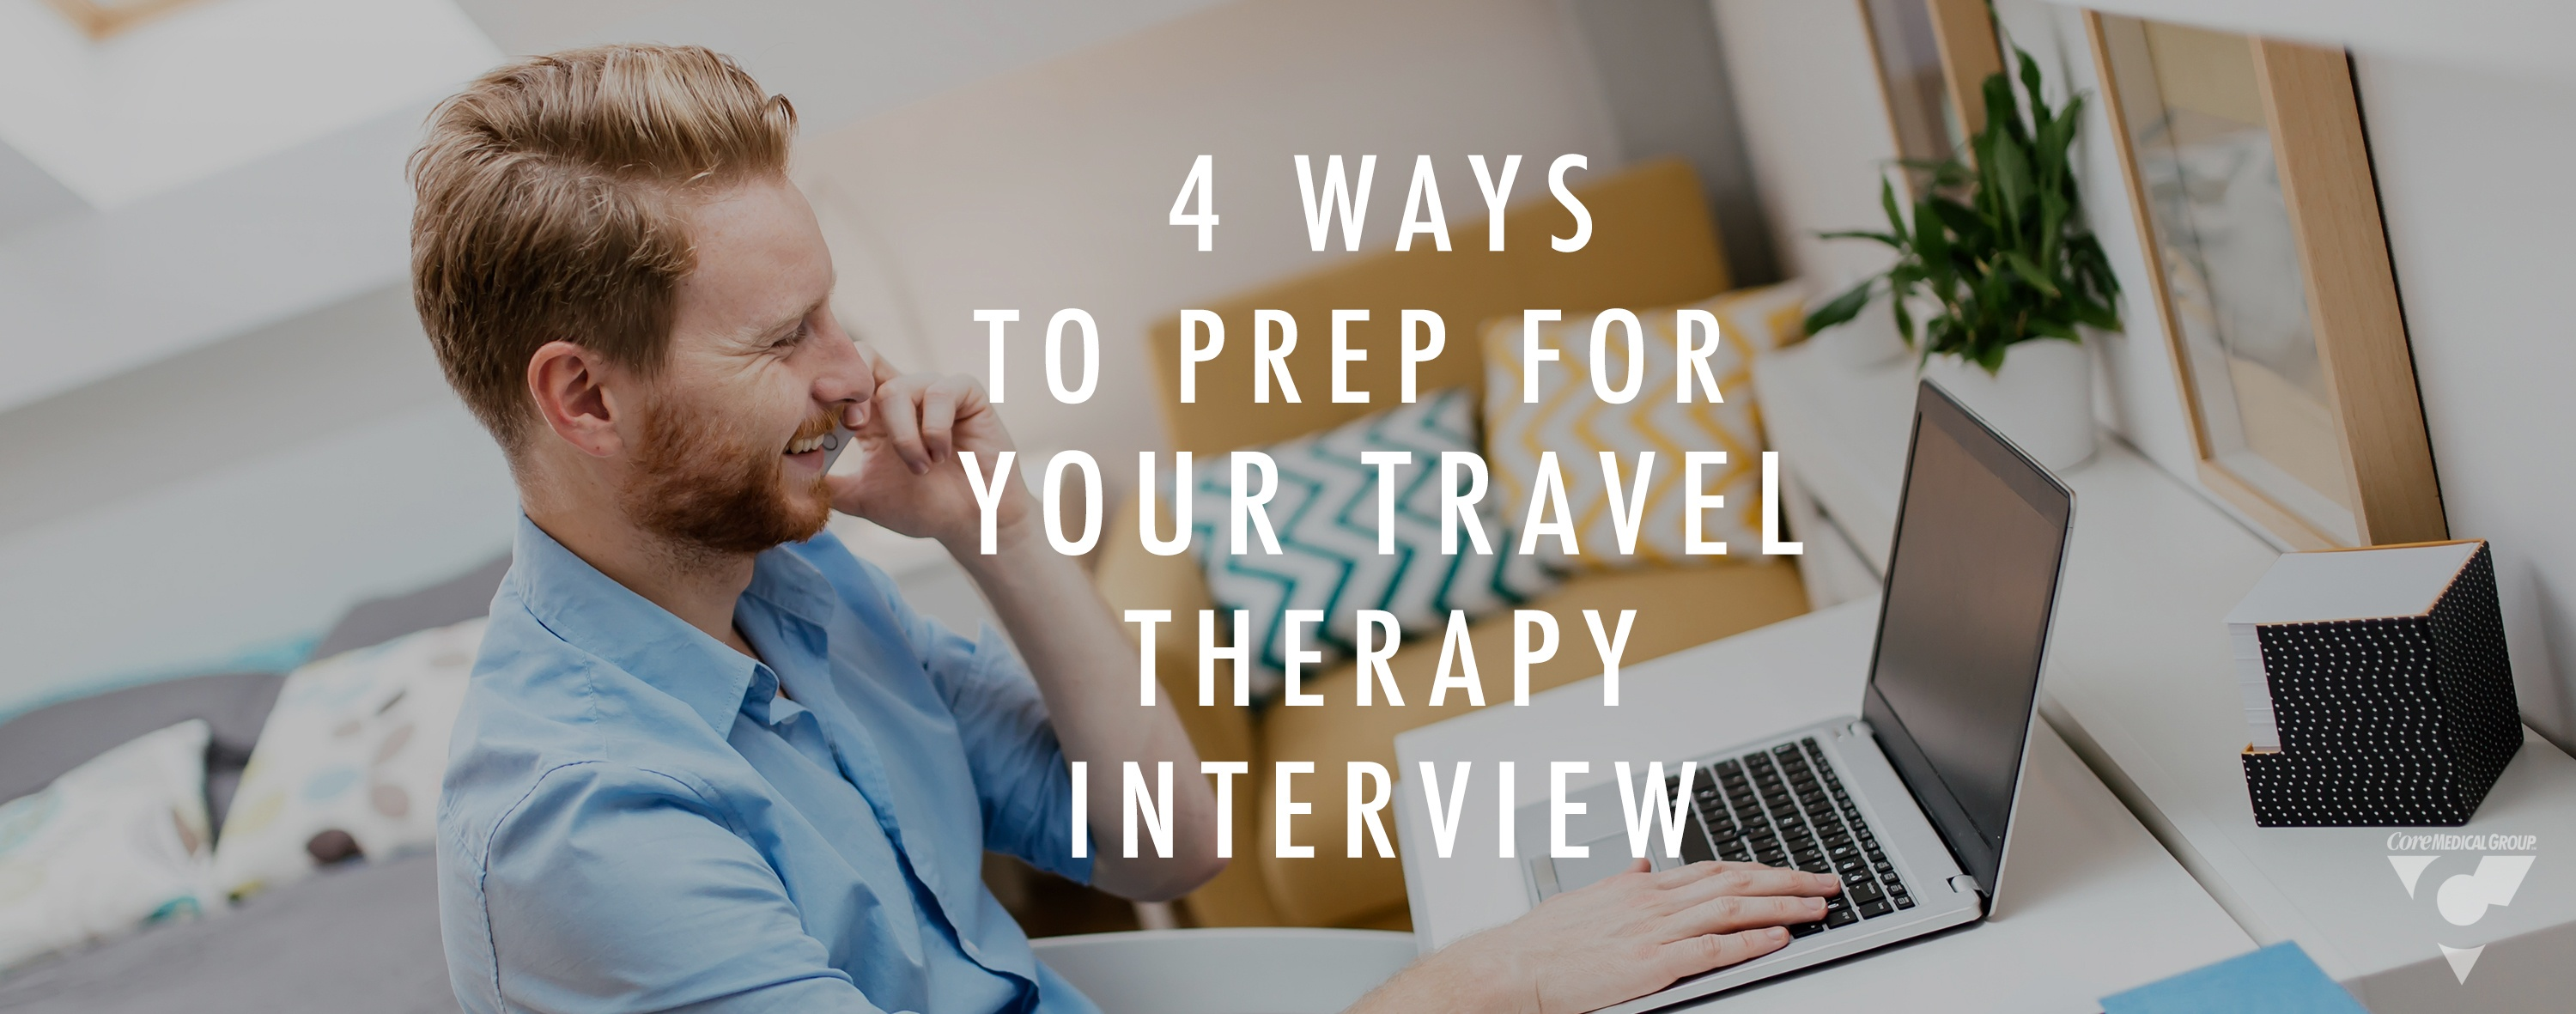 4 Ways To Prep For Your Travel Therapy Interview